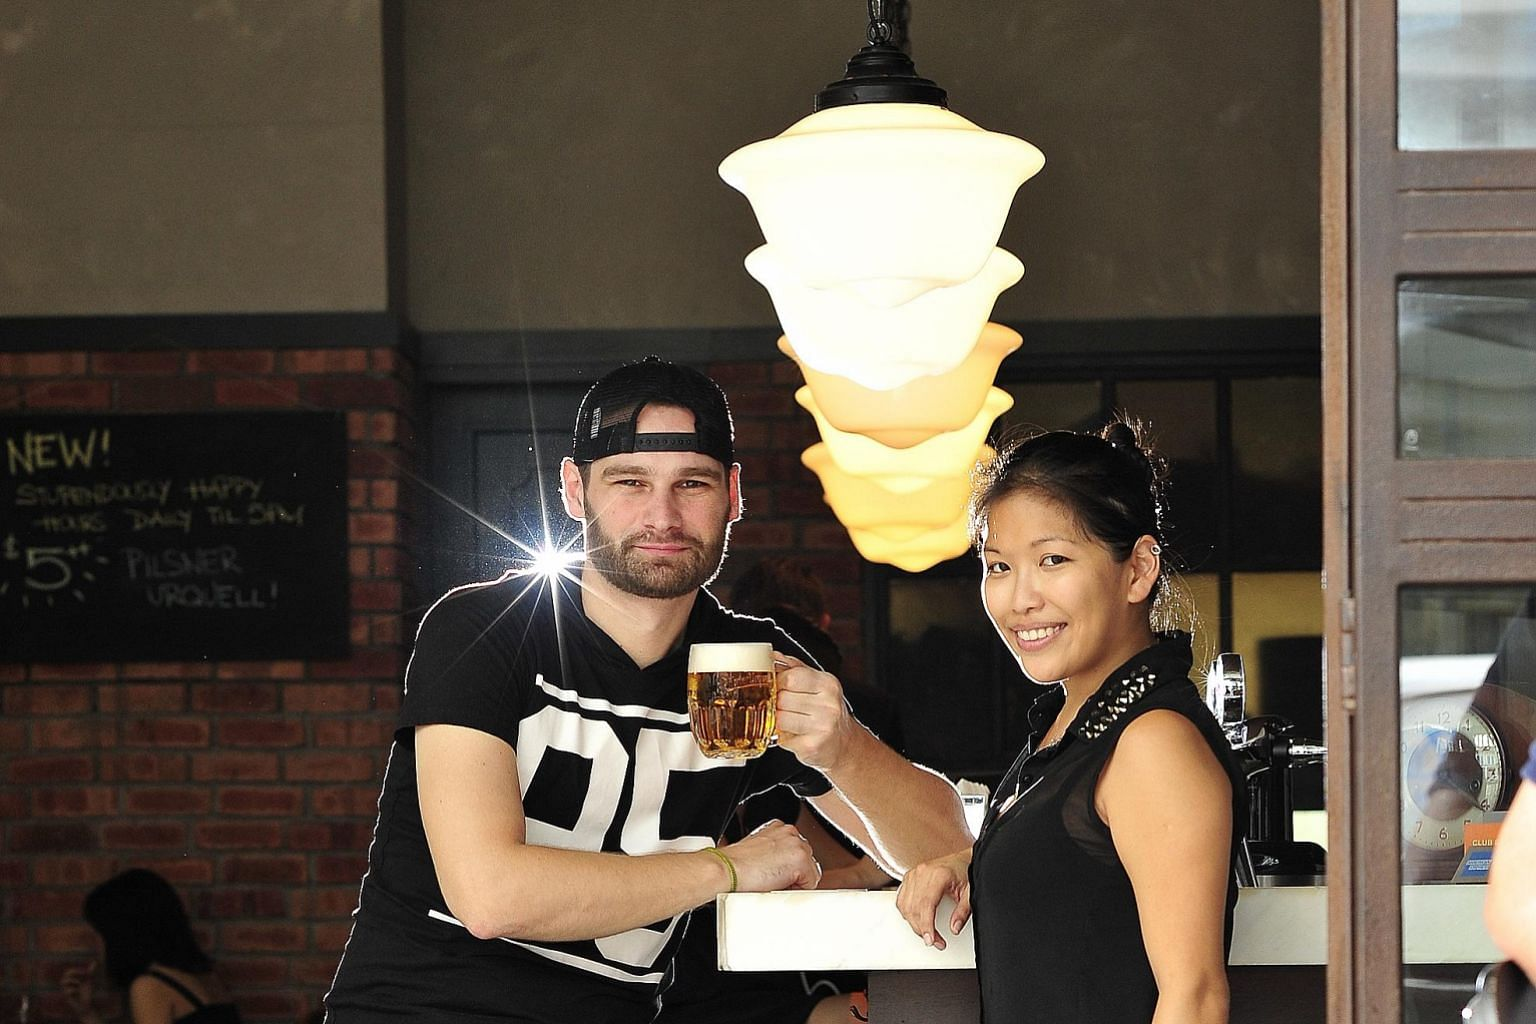 Owner Min Chan will reopen Club Street Social as a restaurant-bar next month, and new general manager Tomas Gejdos will introduce new drinks including barrel-aged cocktails.